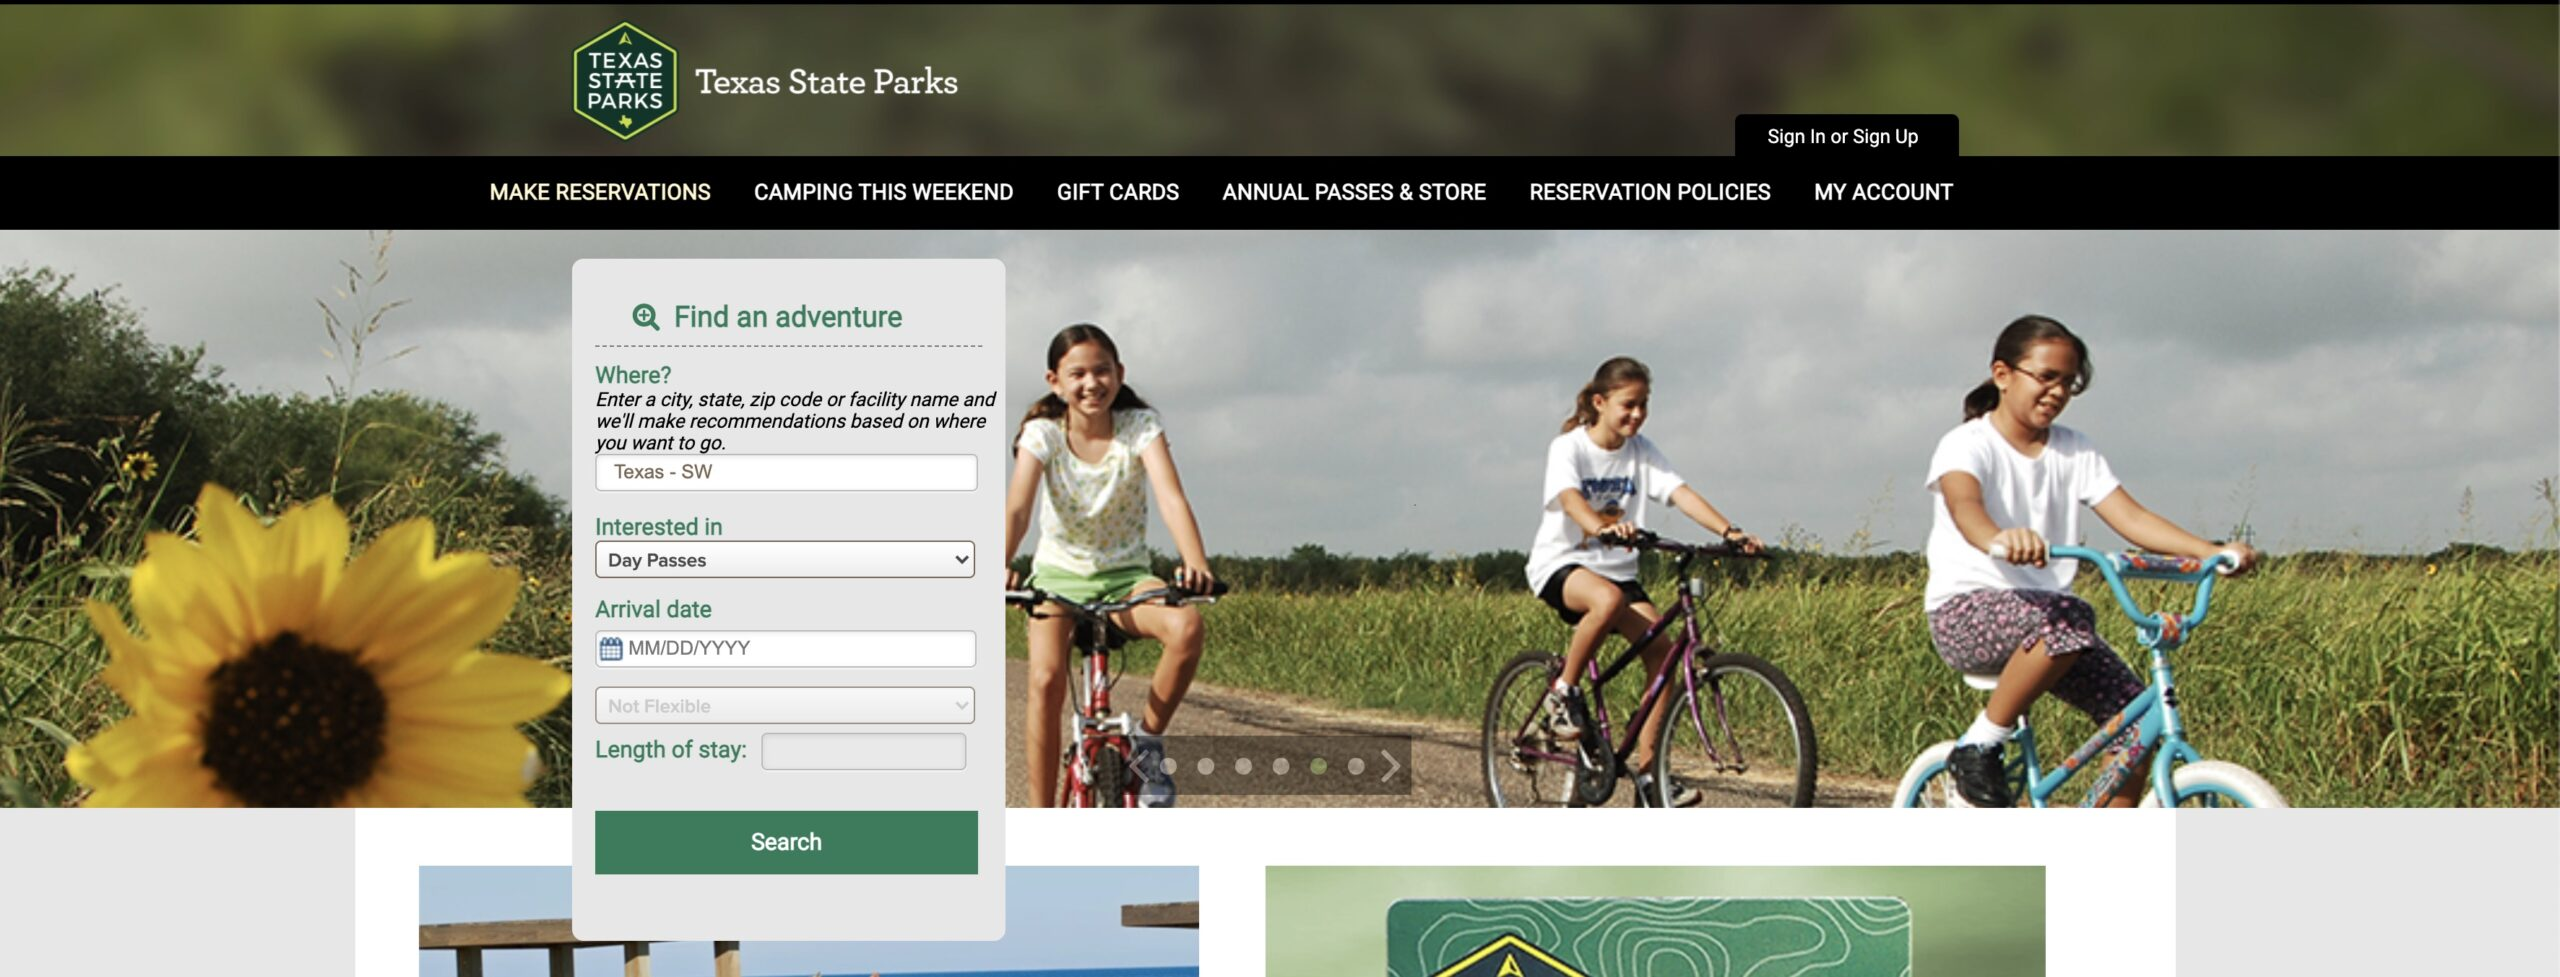 Texas state parks login